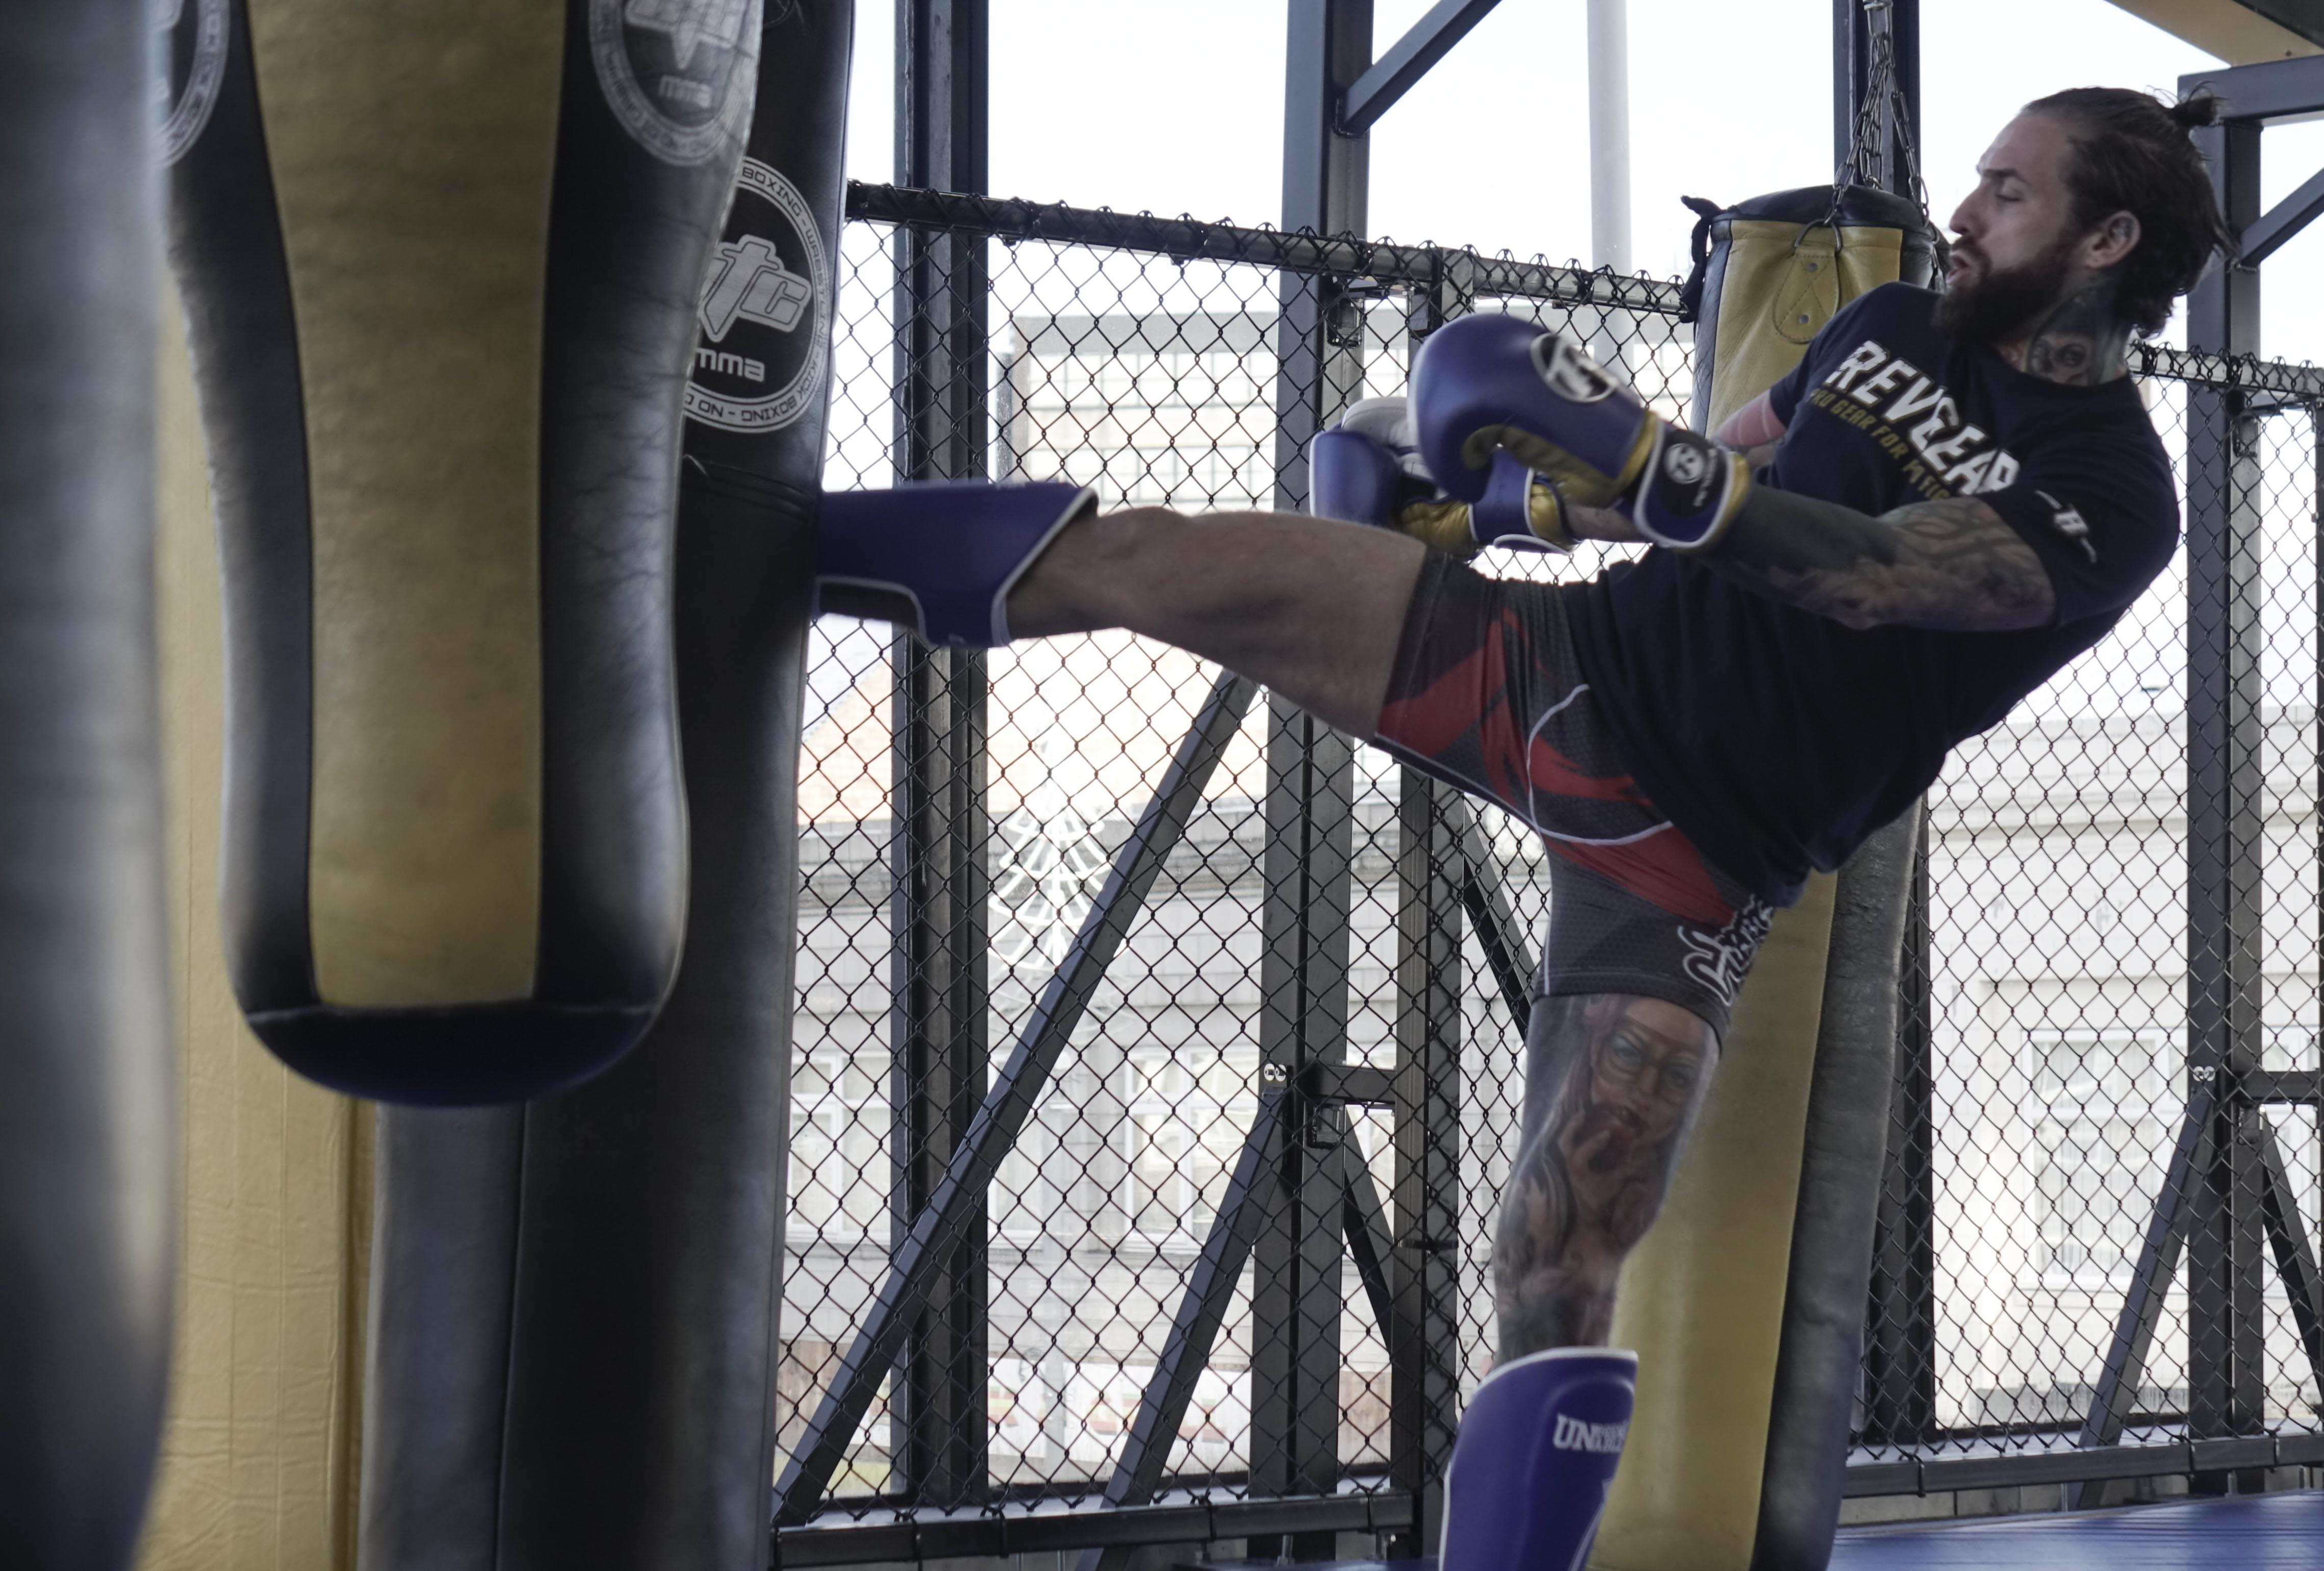 Aaron Chalmers has three straight wins on his record